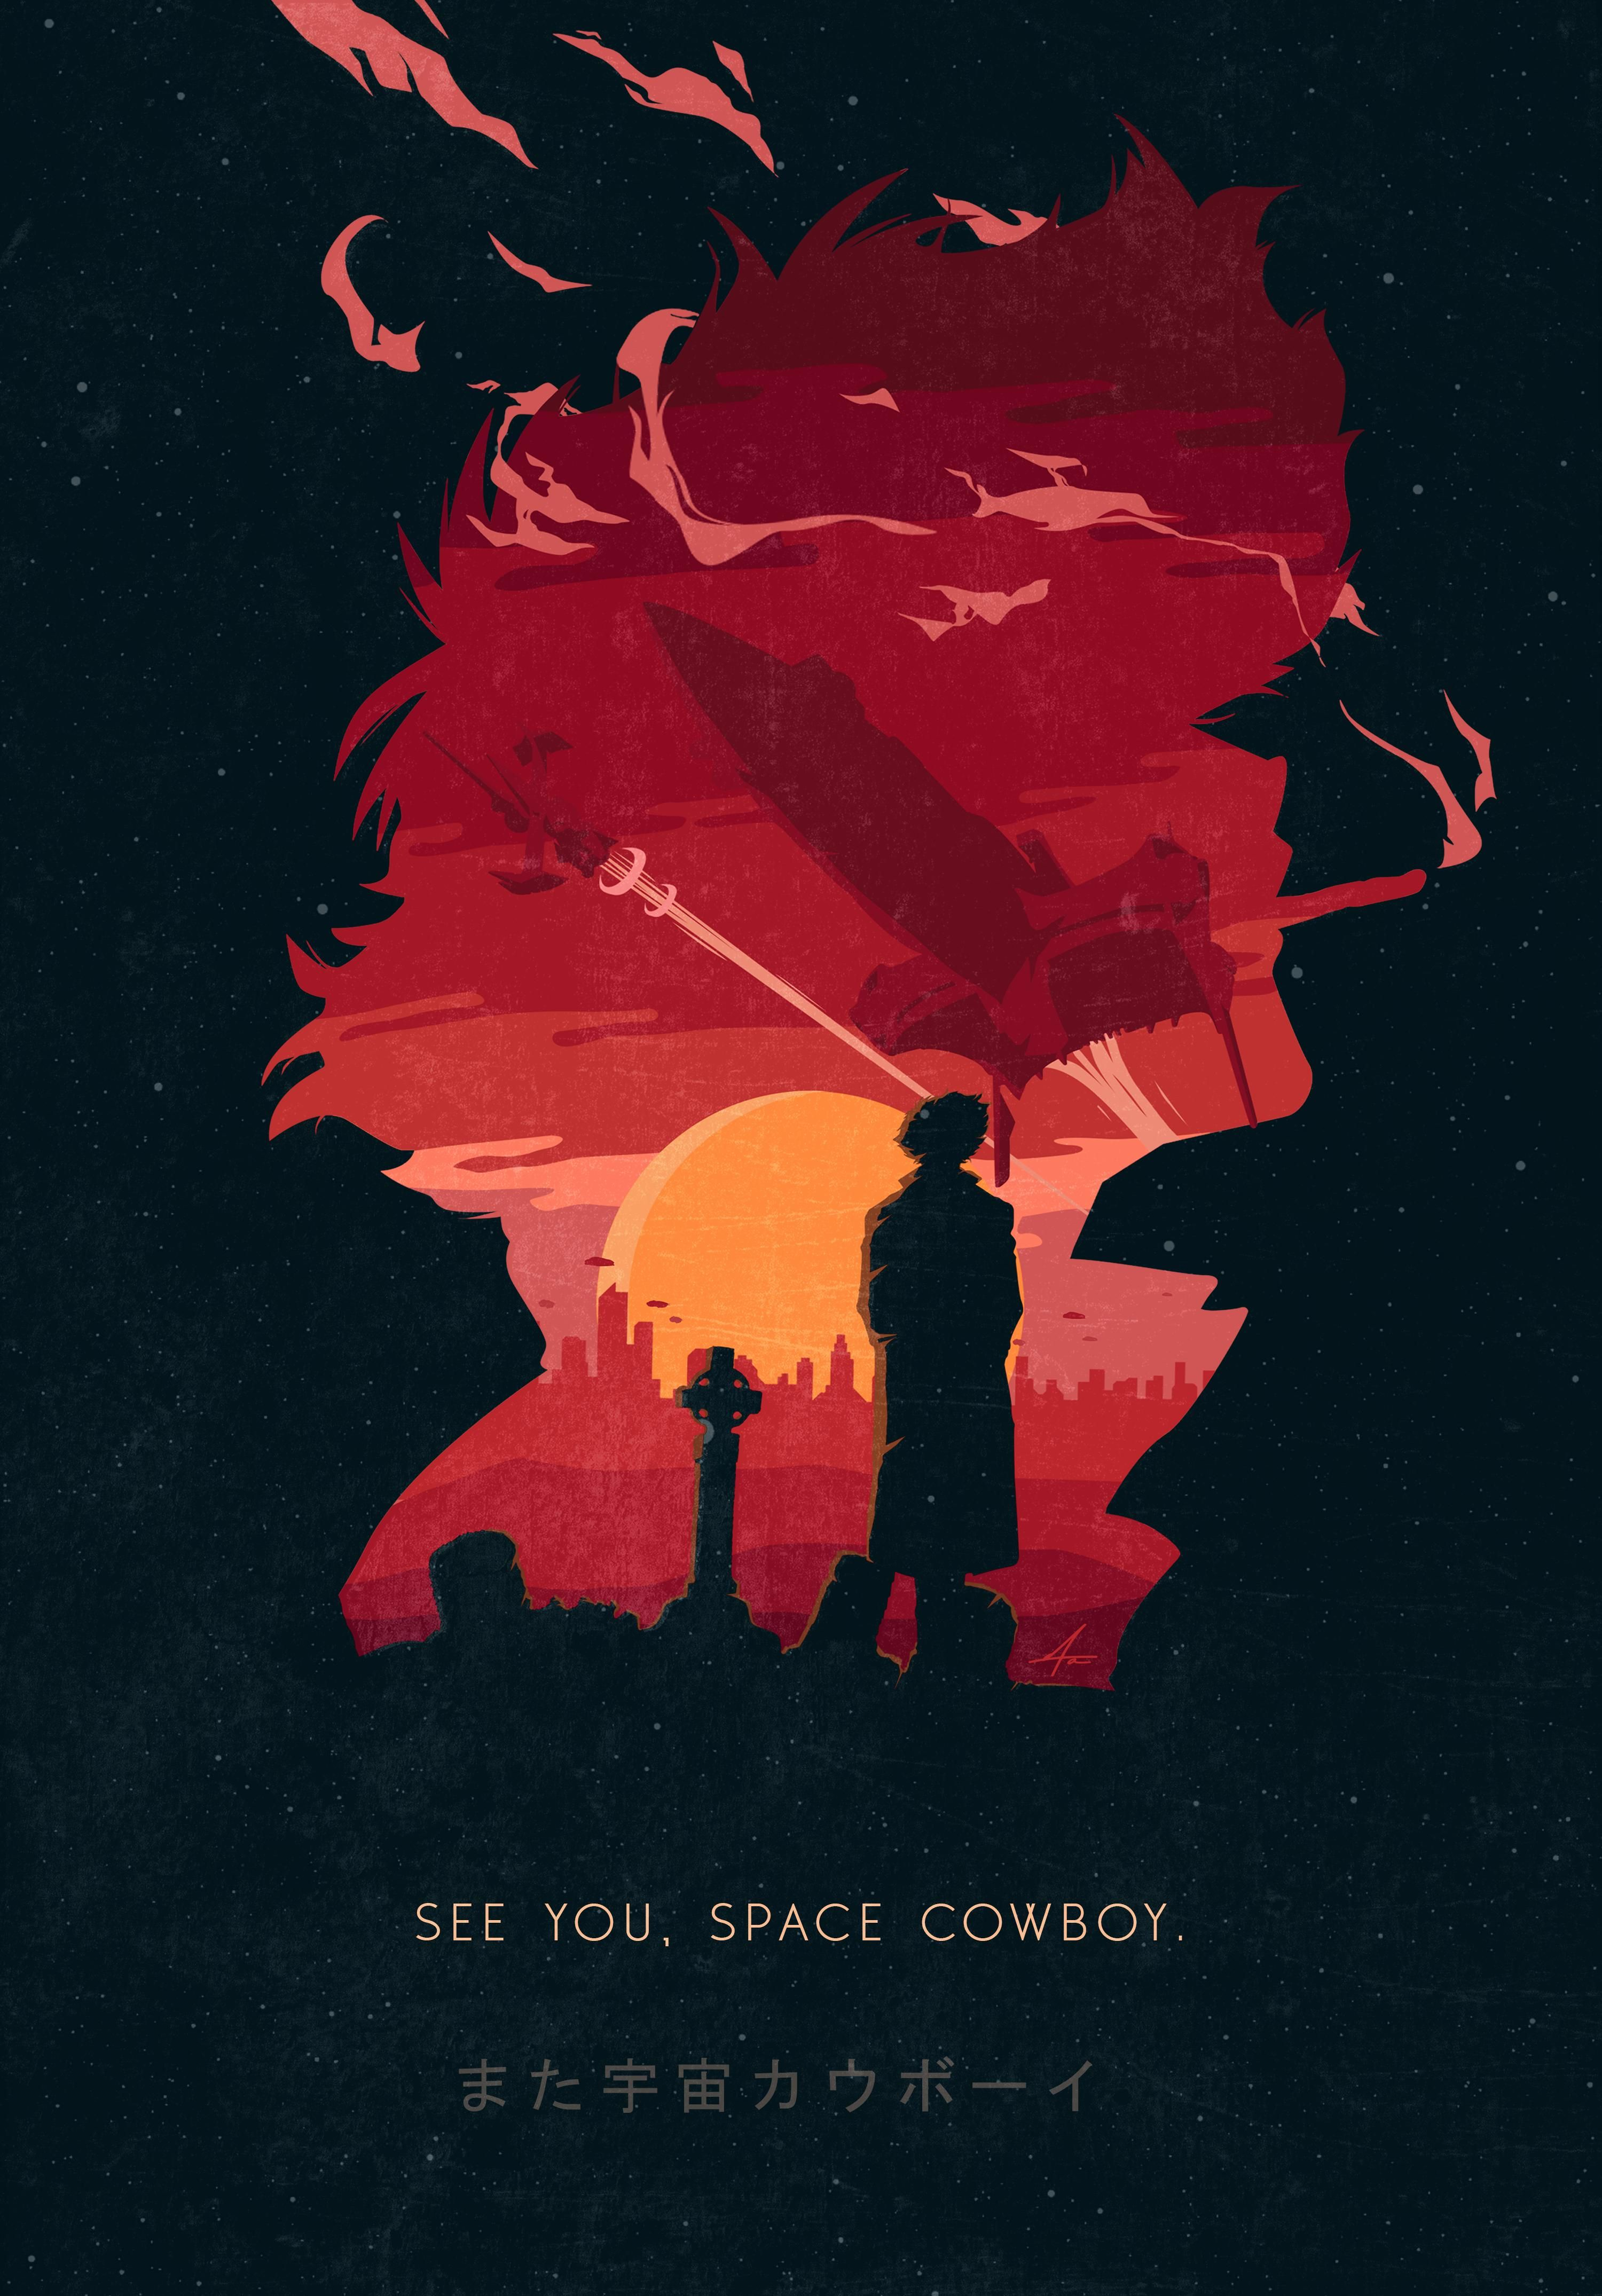 Cowboy Bebop Posters In 2020 Cowboy Bebop Cowboy Bebop Wallpapers Anime Art Beautiful